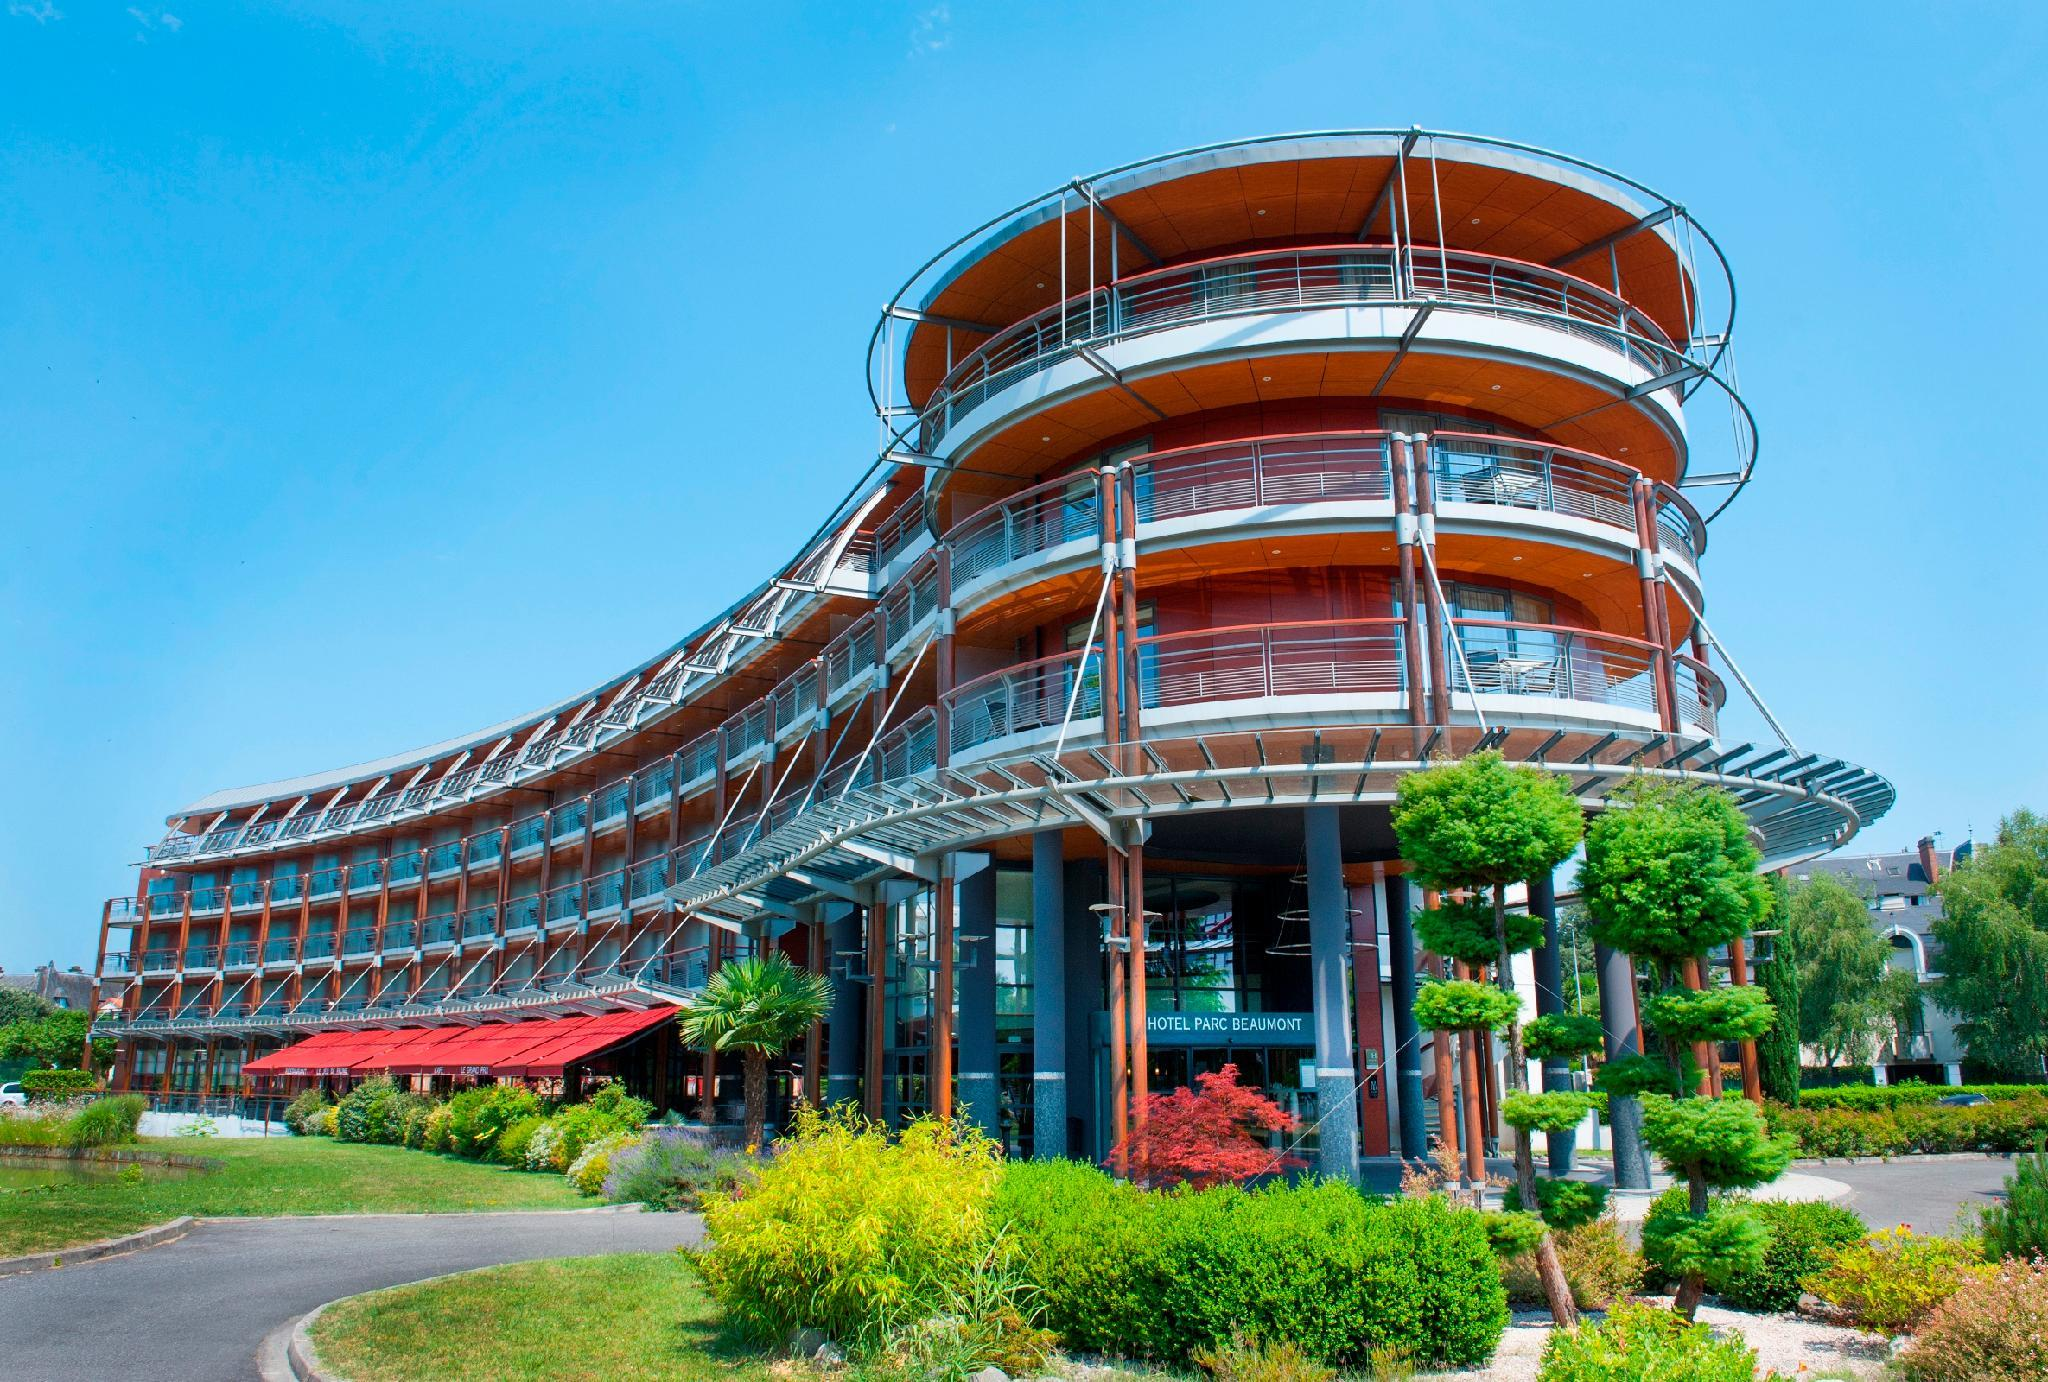 Hotel Parc Beaumont Pau   MGallery